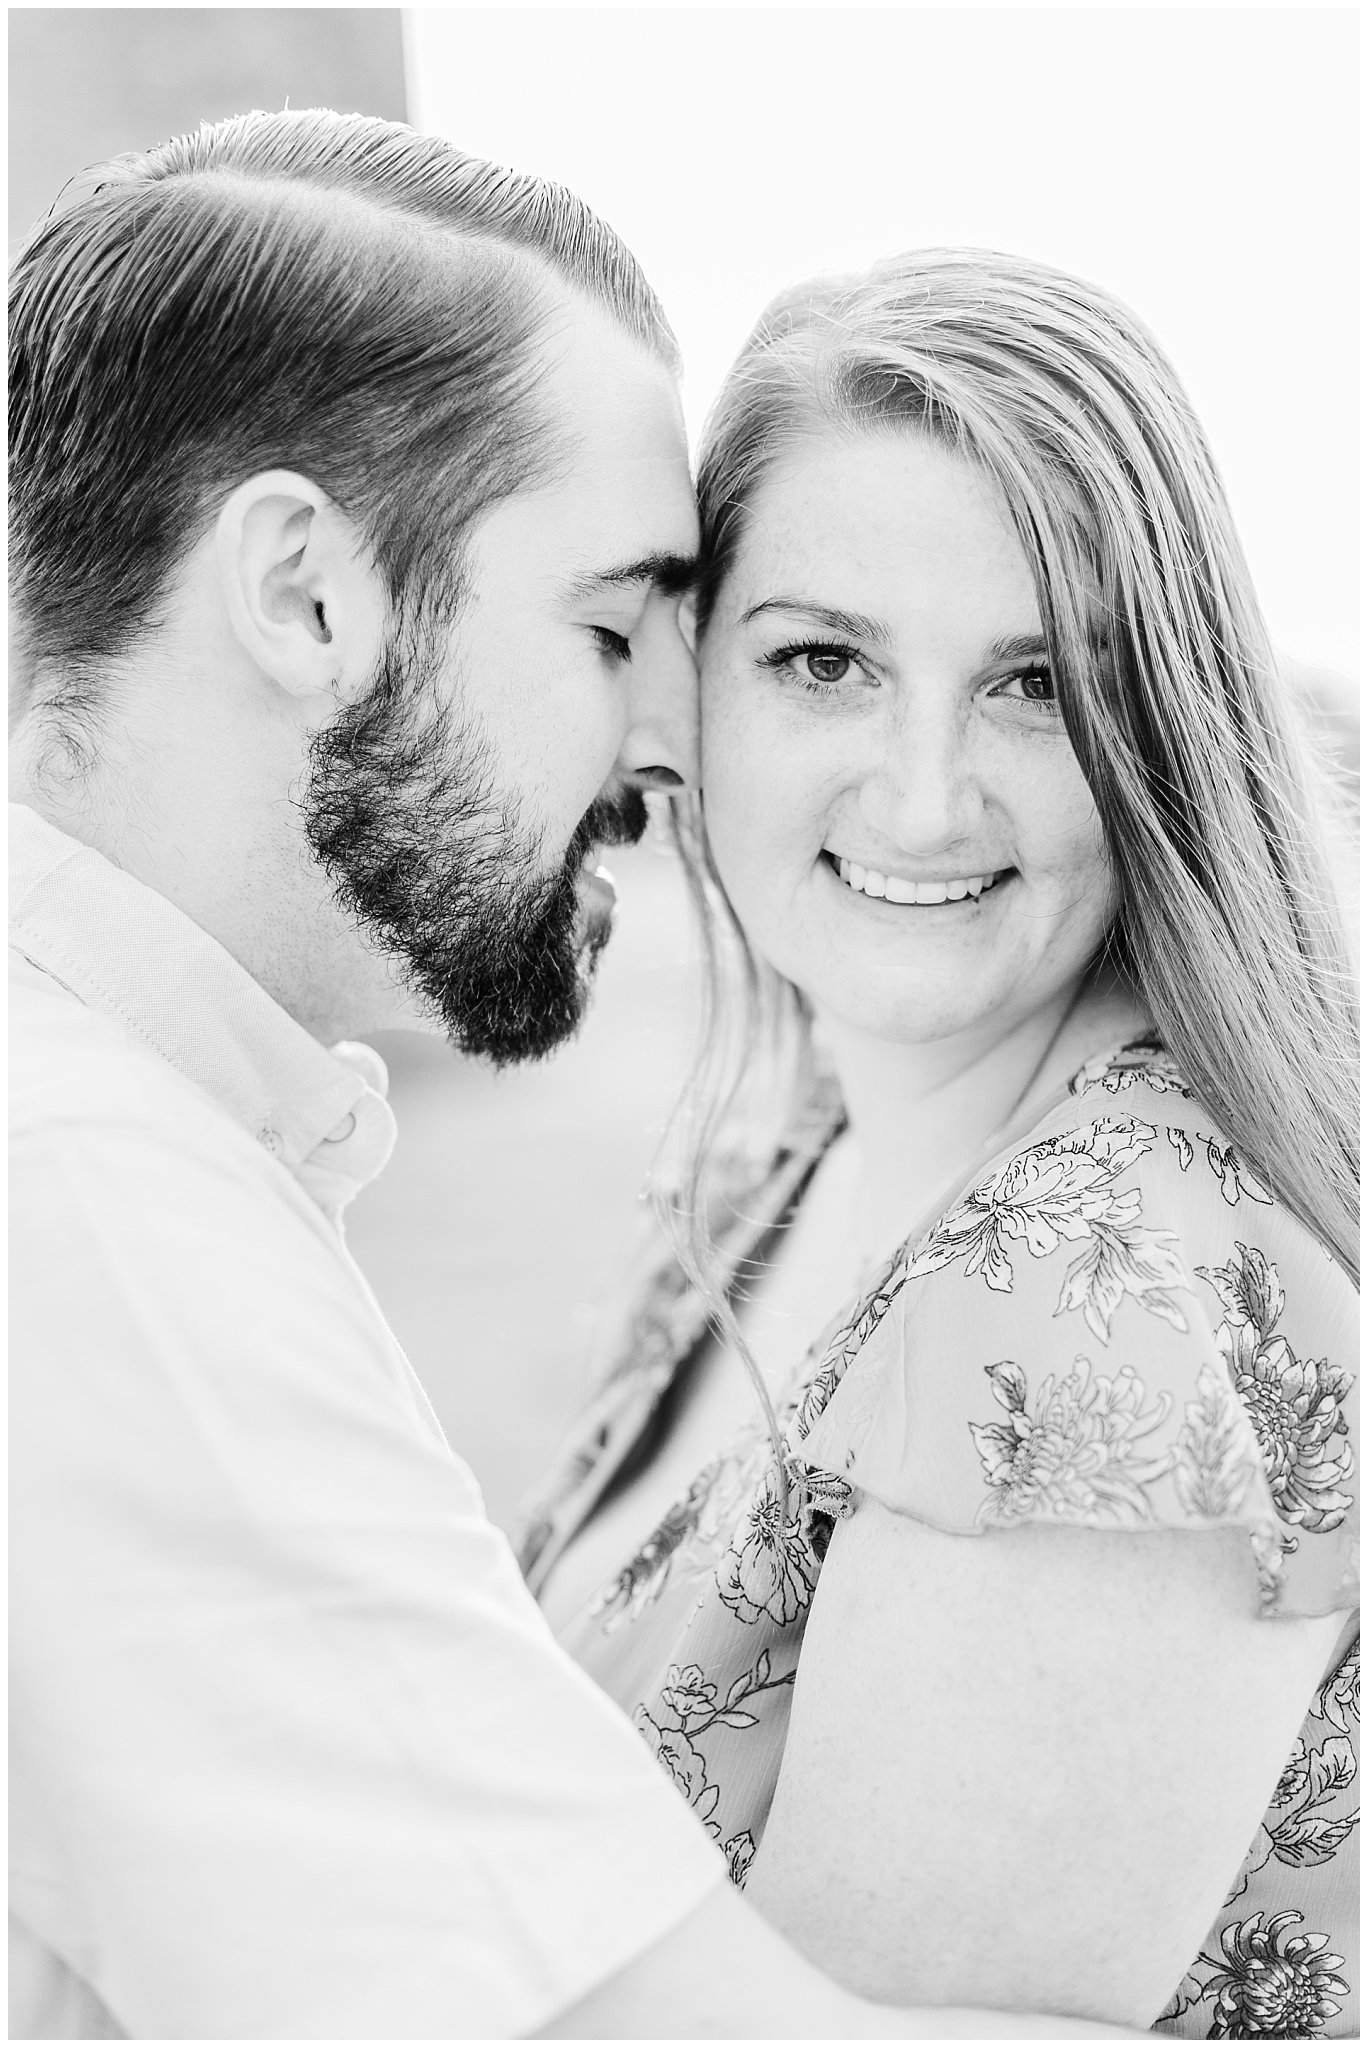 Manor house at prophecy Creek Blue Bell PA wedding venue summertime field engagement session lehigh valley based wedding and lifestyle photographe_0006.jpg